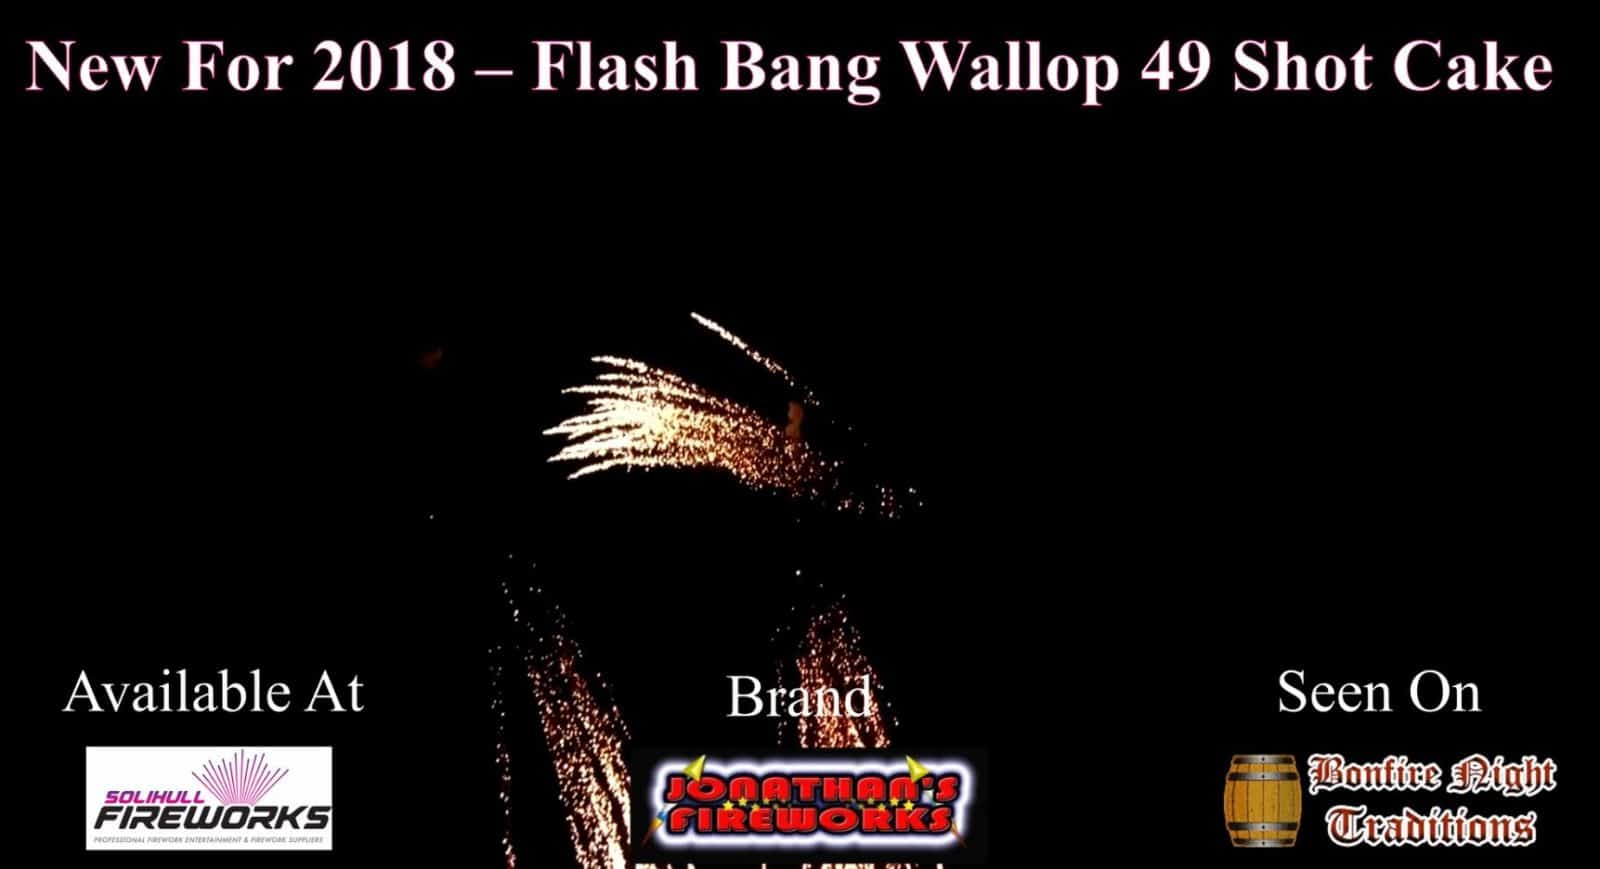 New For 2018 – Flash, Bang, Wallop 49 Shot Cake